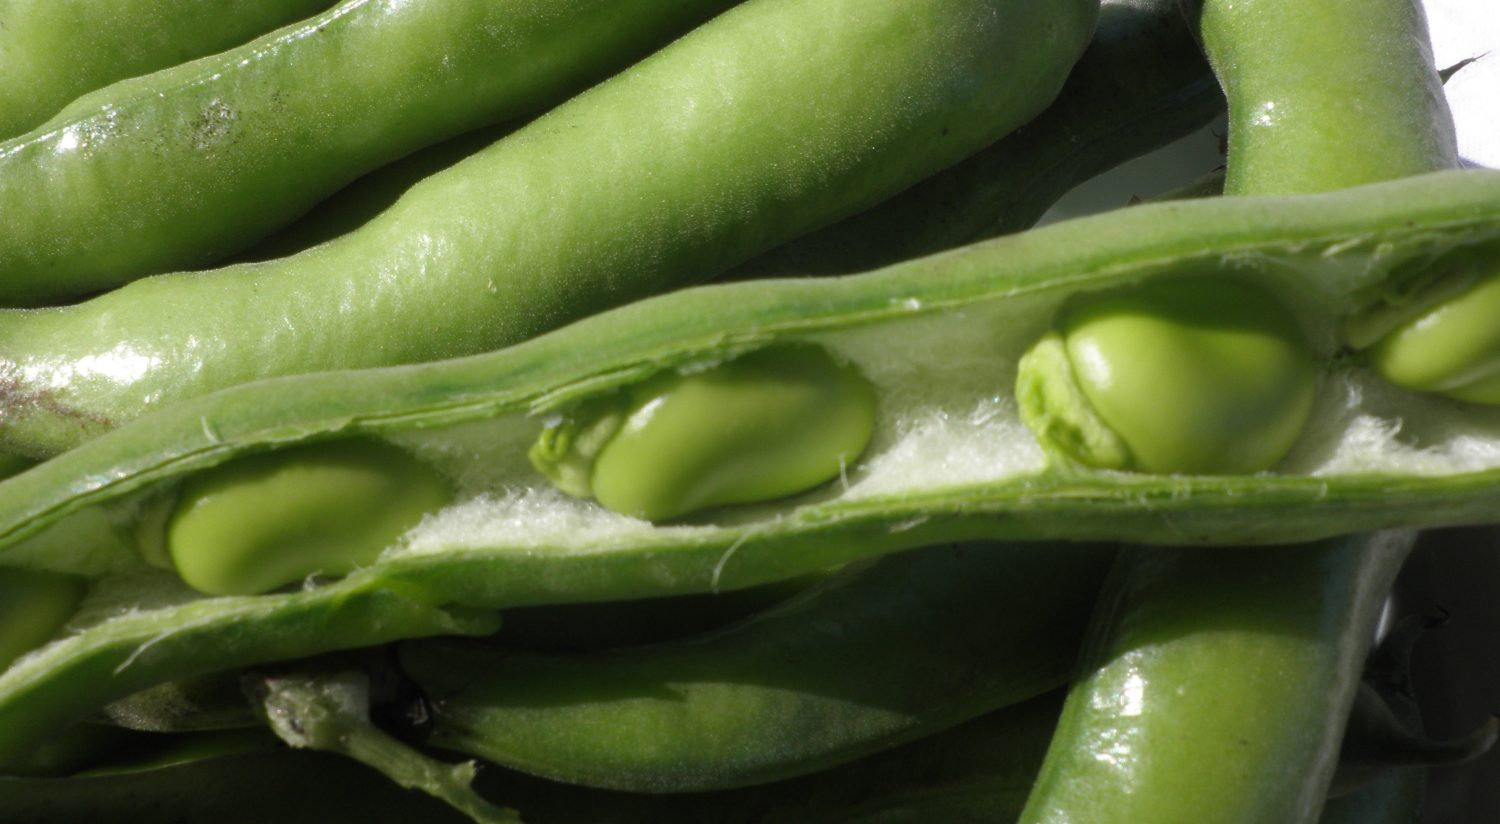 Pick broad beans when the beans are the size of your thumbnail